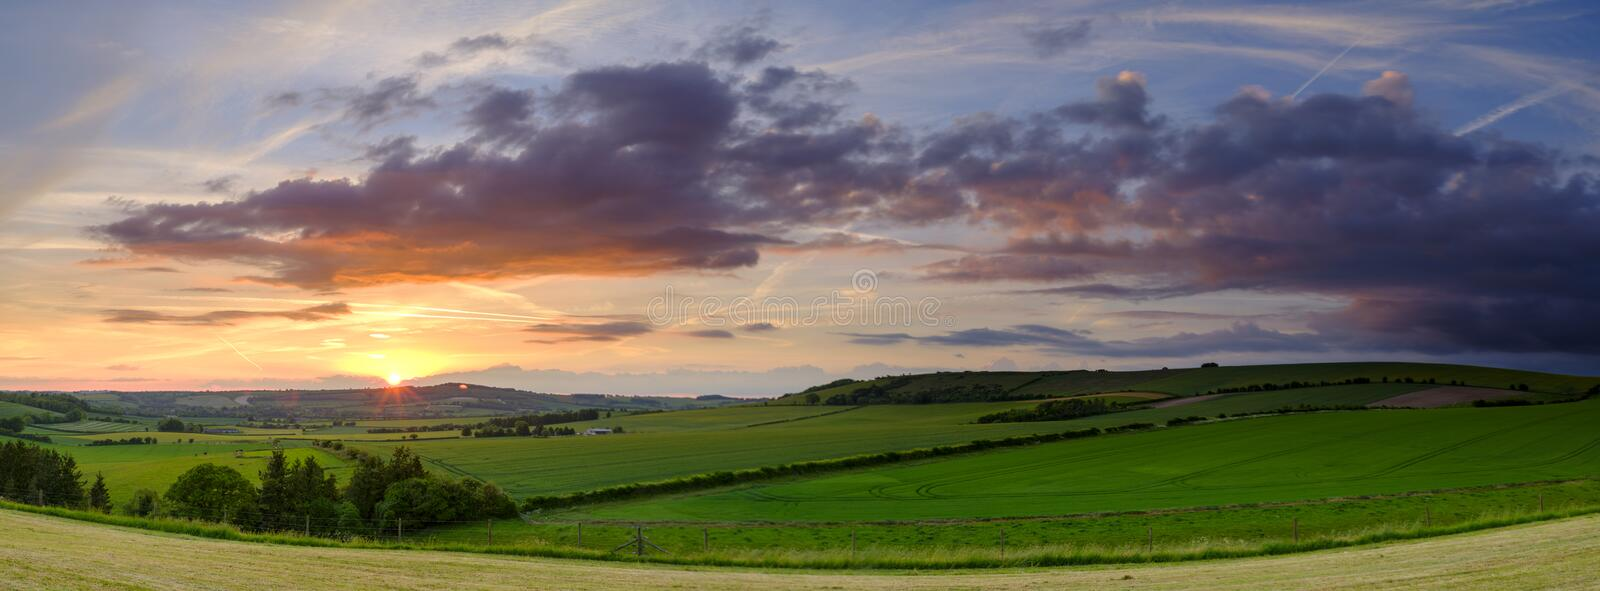 Stormy summer evening over the Meon Valley, South Downs National Park, UK stock image